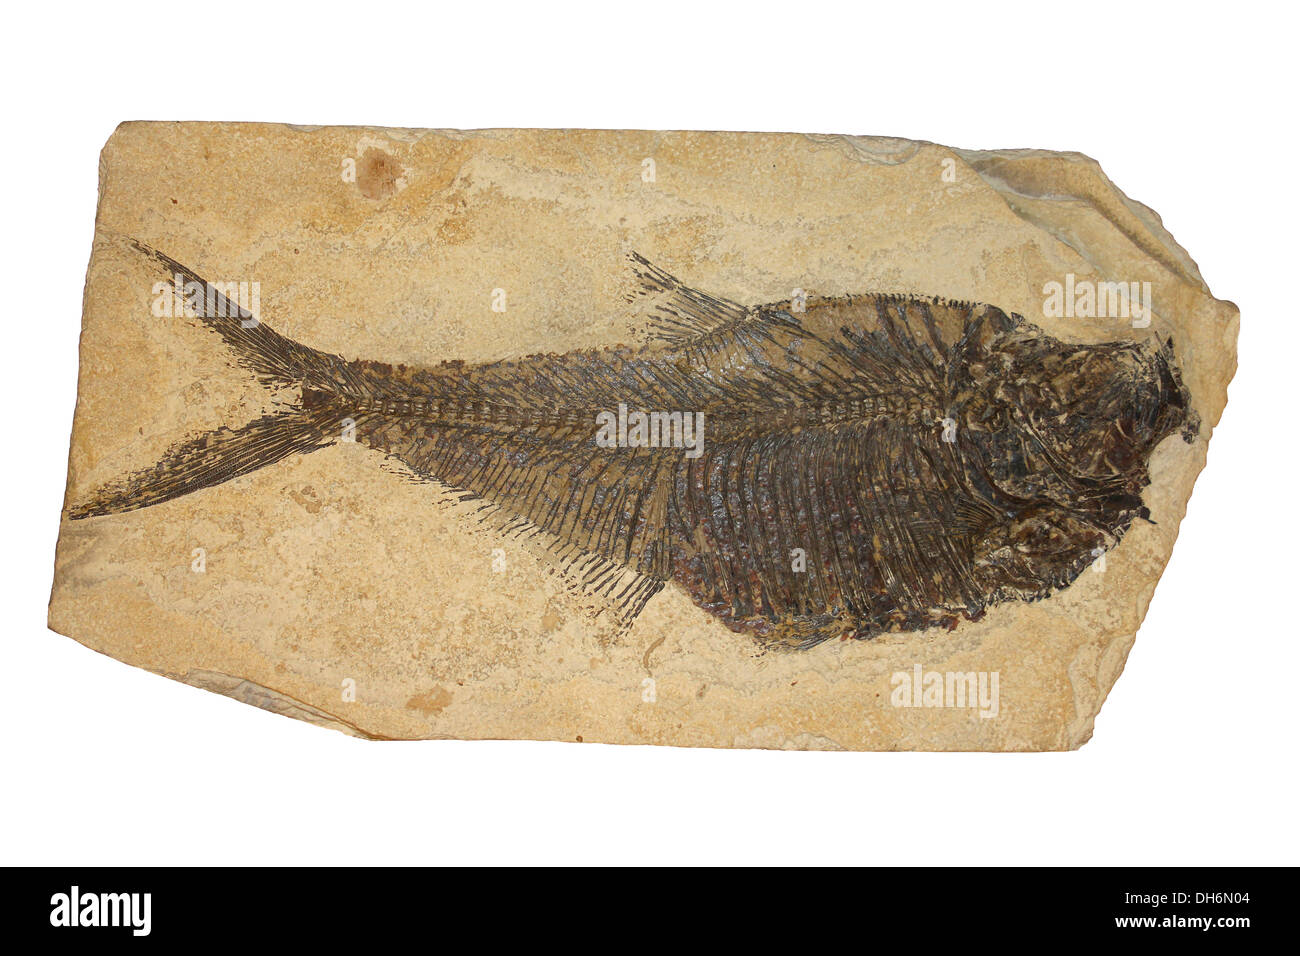 Diplomystus sp. lower Eocene deposits of the Green River Formation in Wyoming, USA - Stock Image